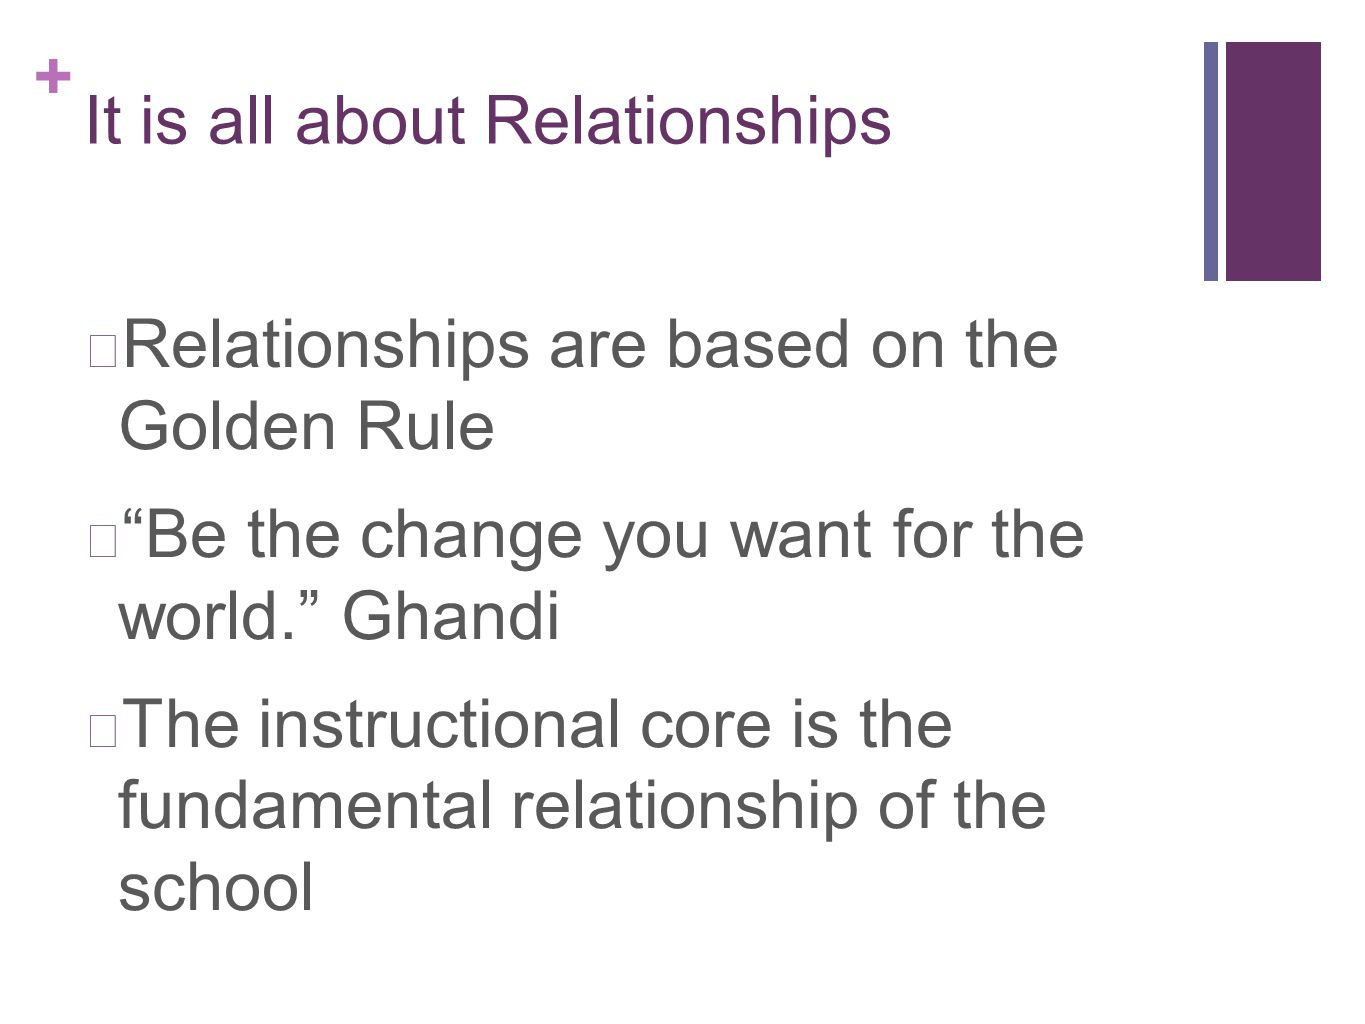 + It is all about Relationships Relationships are based on the Golden Rule Be the change you want for the world. Ghandi The instructional core is the fundamental relationship of the school